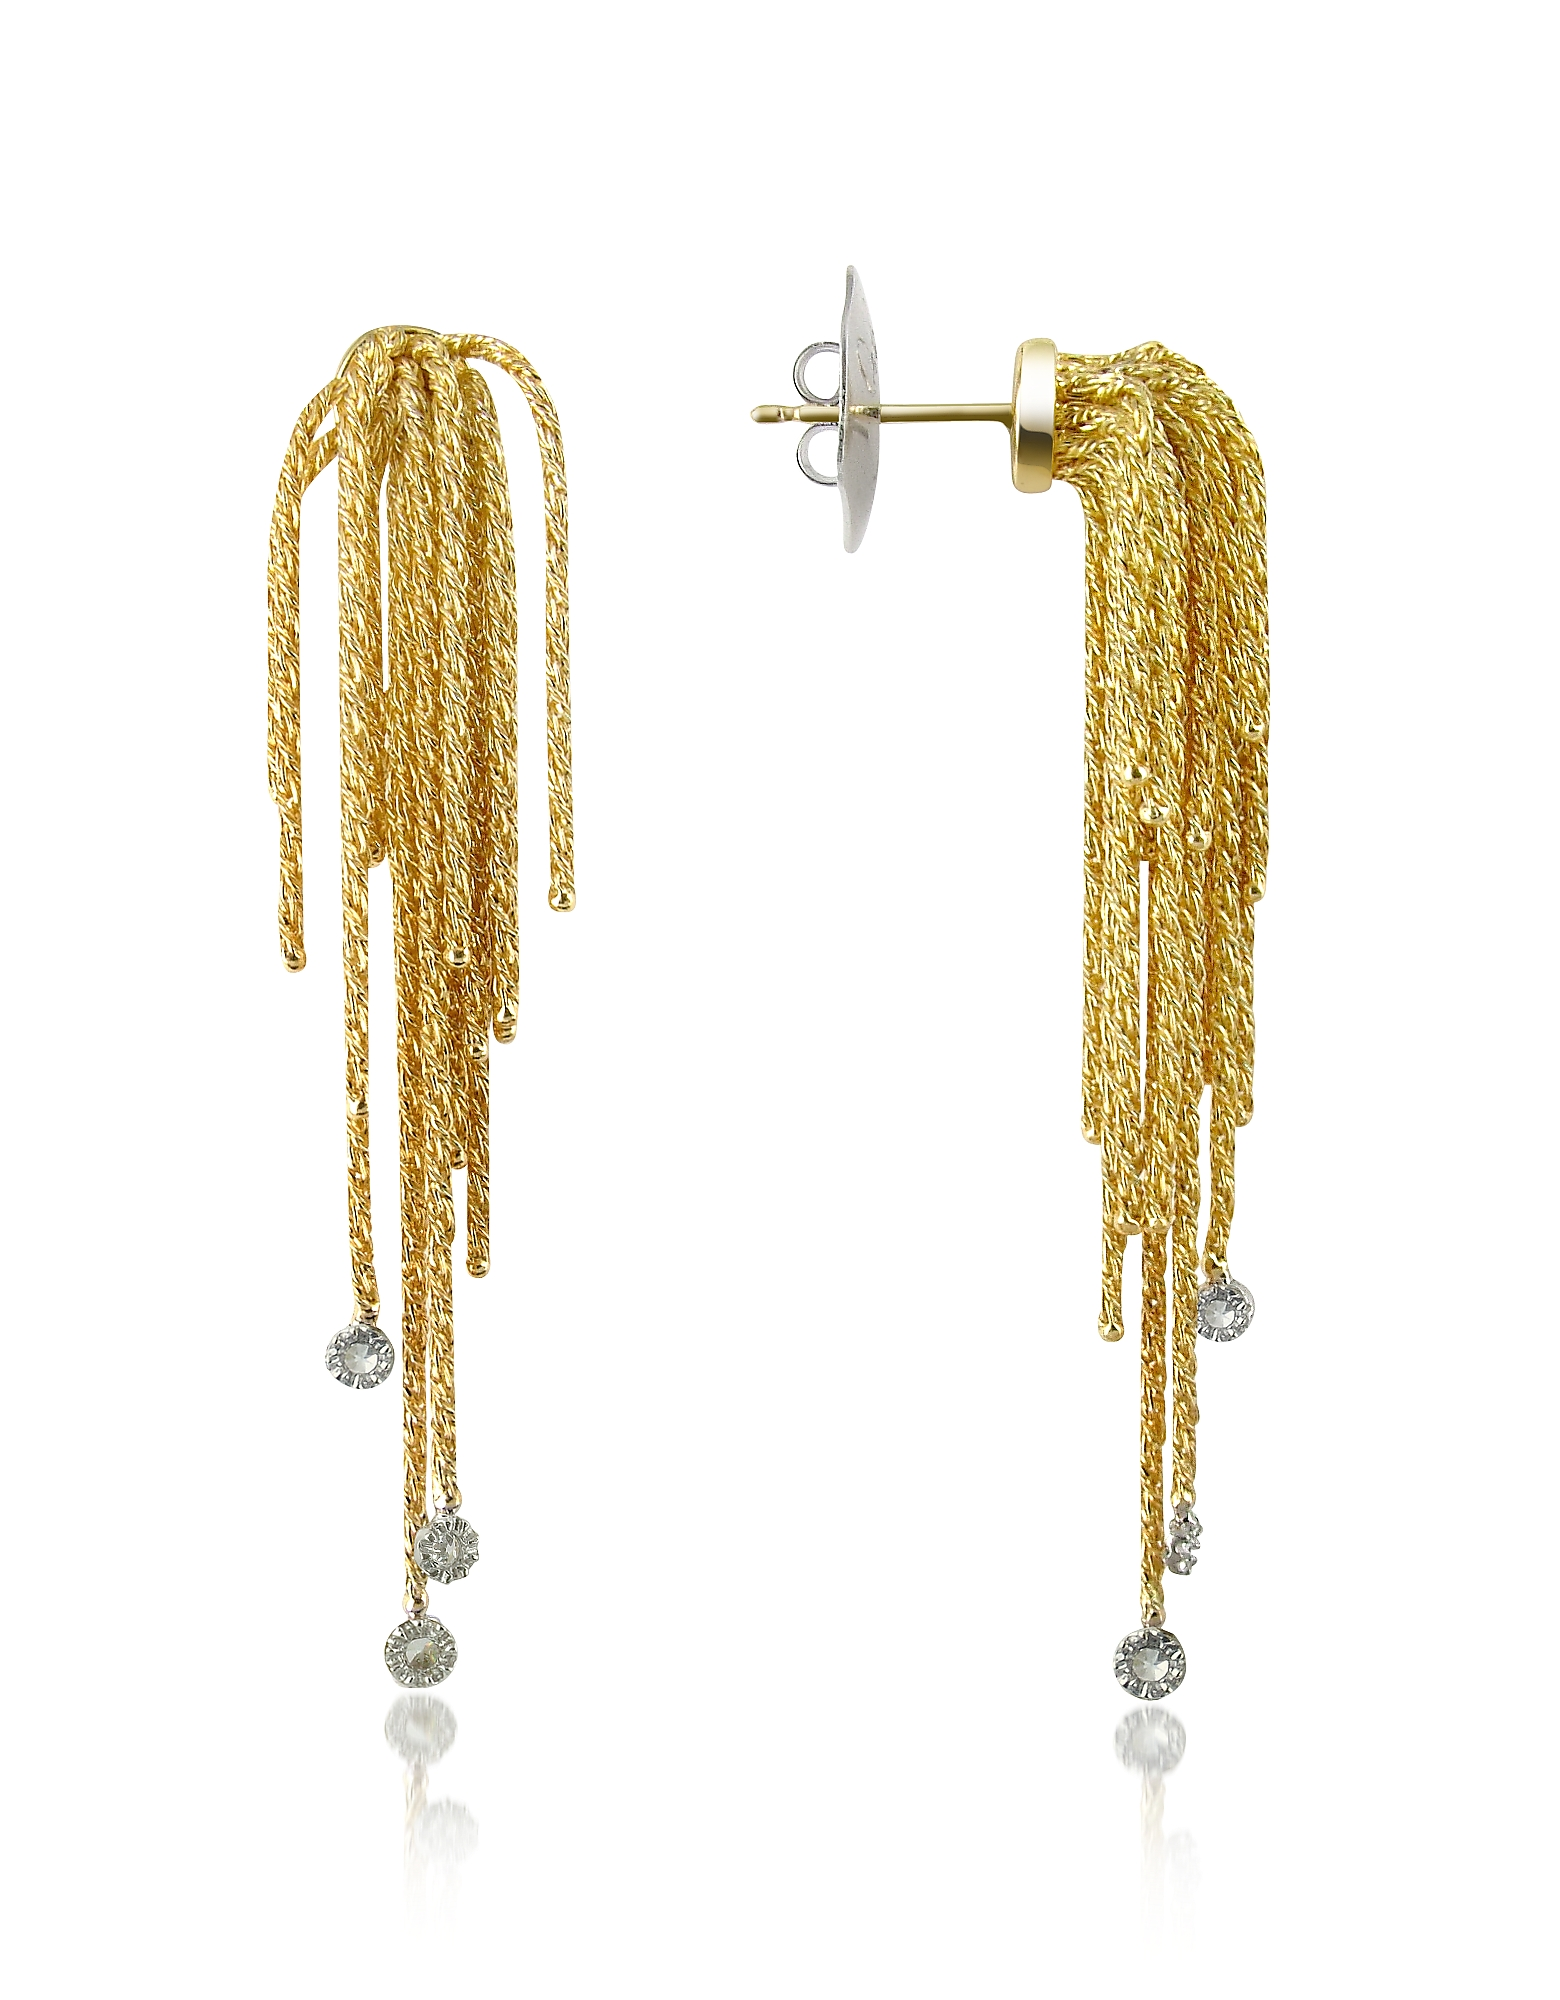 Orlando Orlandini Designer Earrings, Flirt - Diamond Drops 18K Yellow Gold Earrings